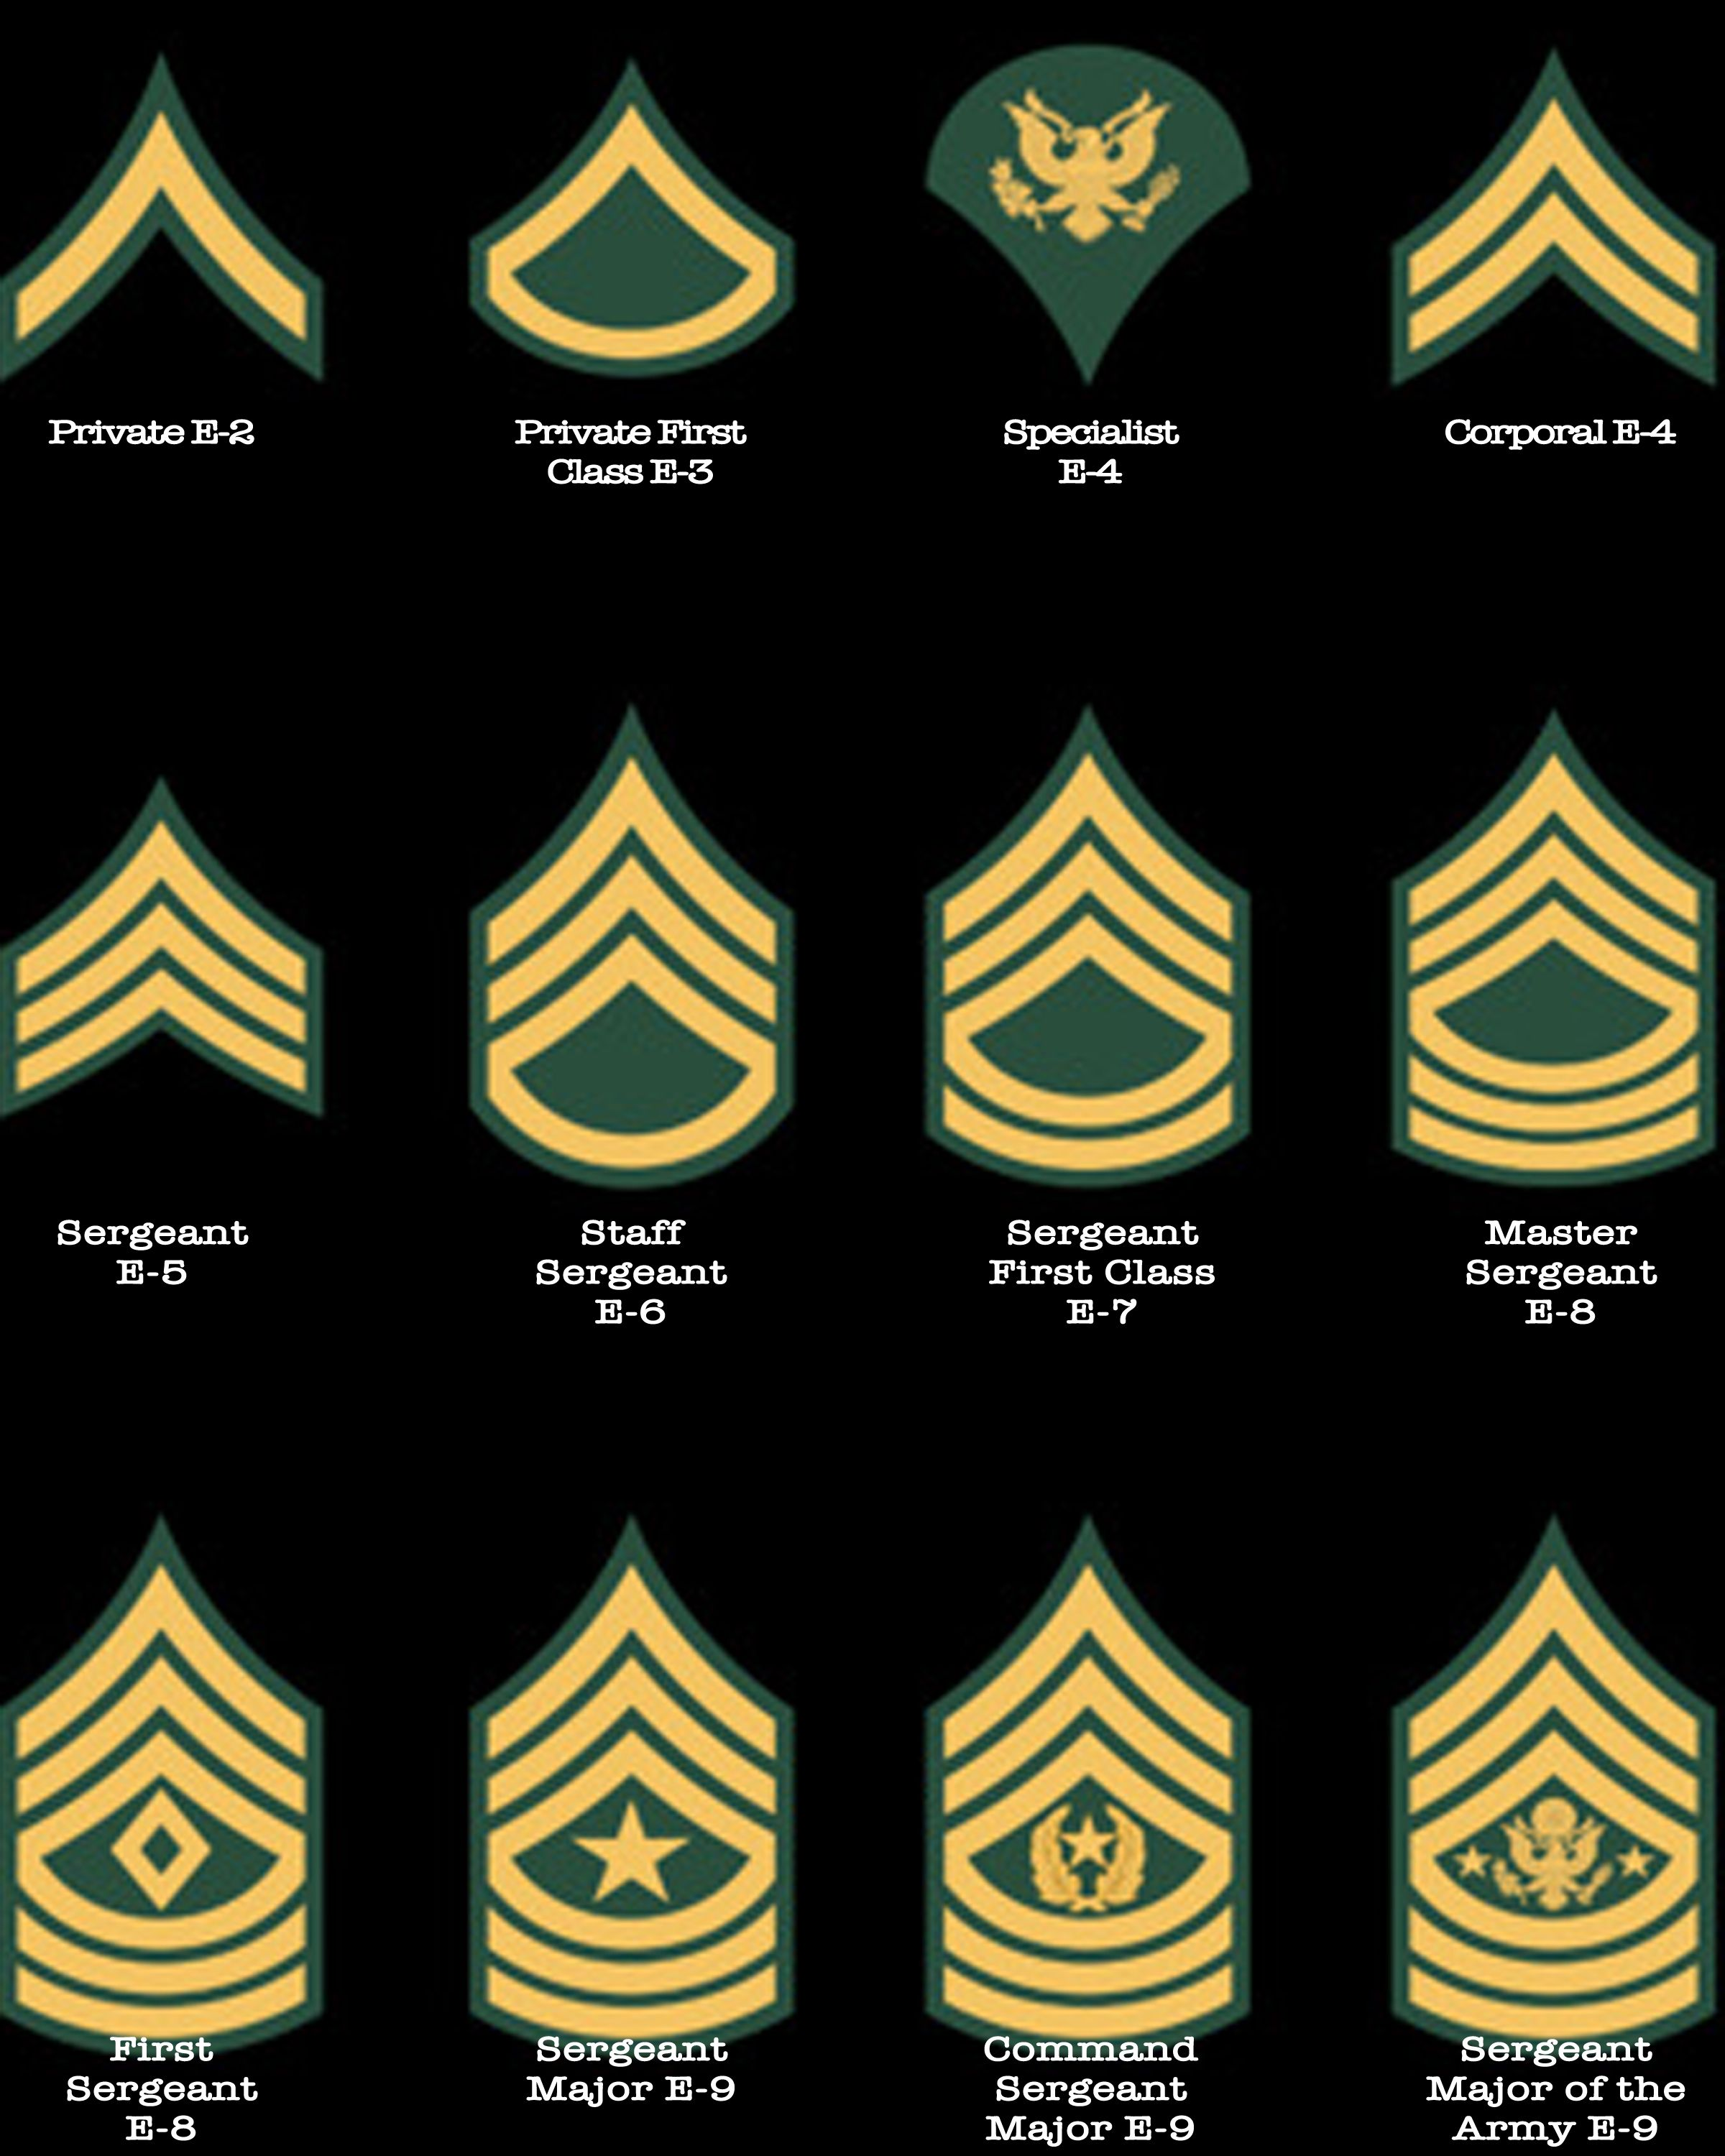 How to scrapbook yahoo - Army Nco Rank Yahoo Search Results